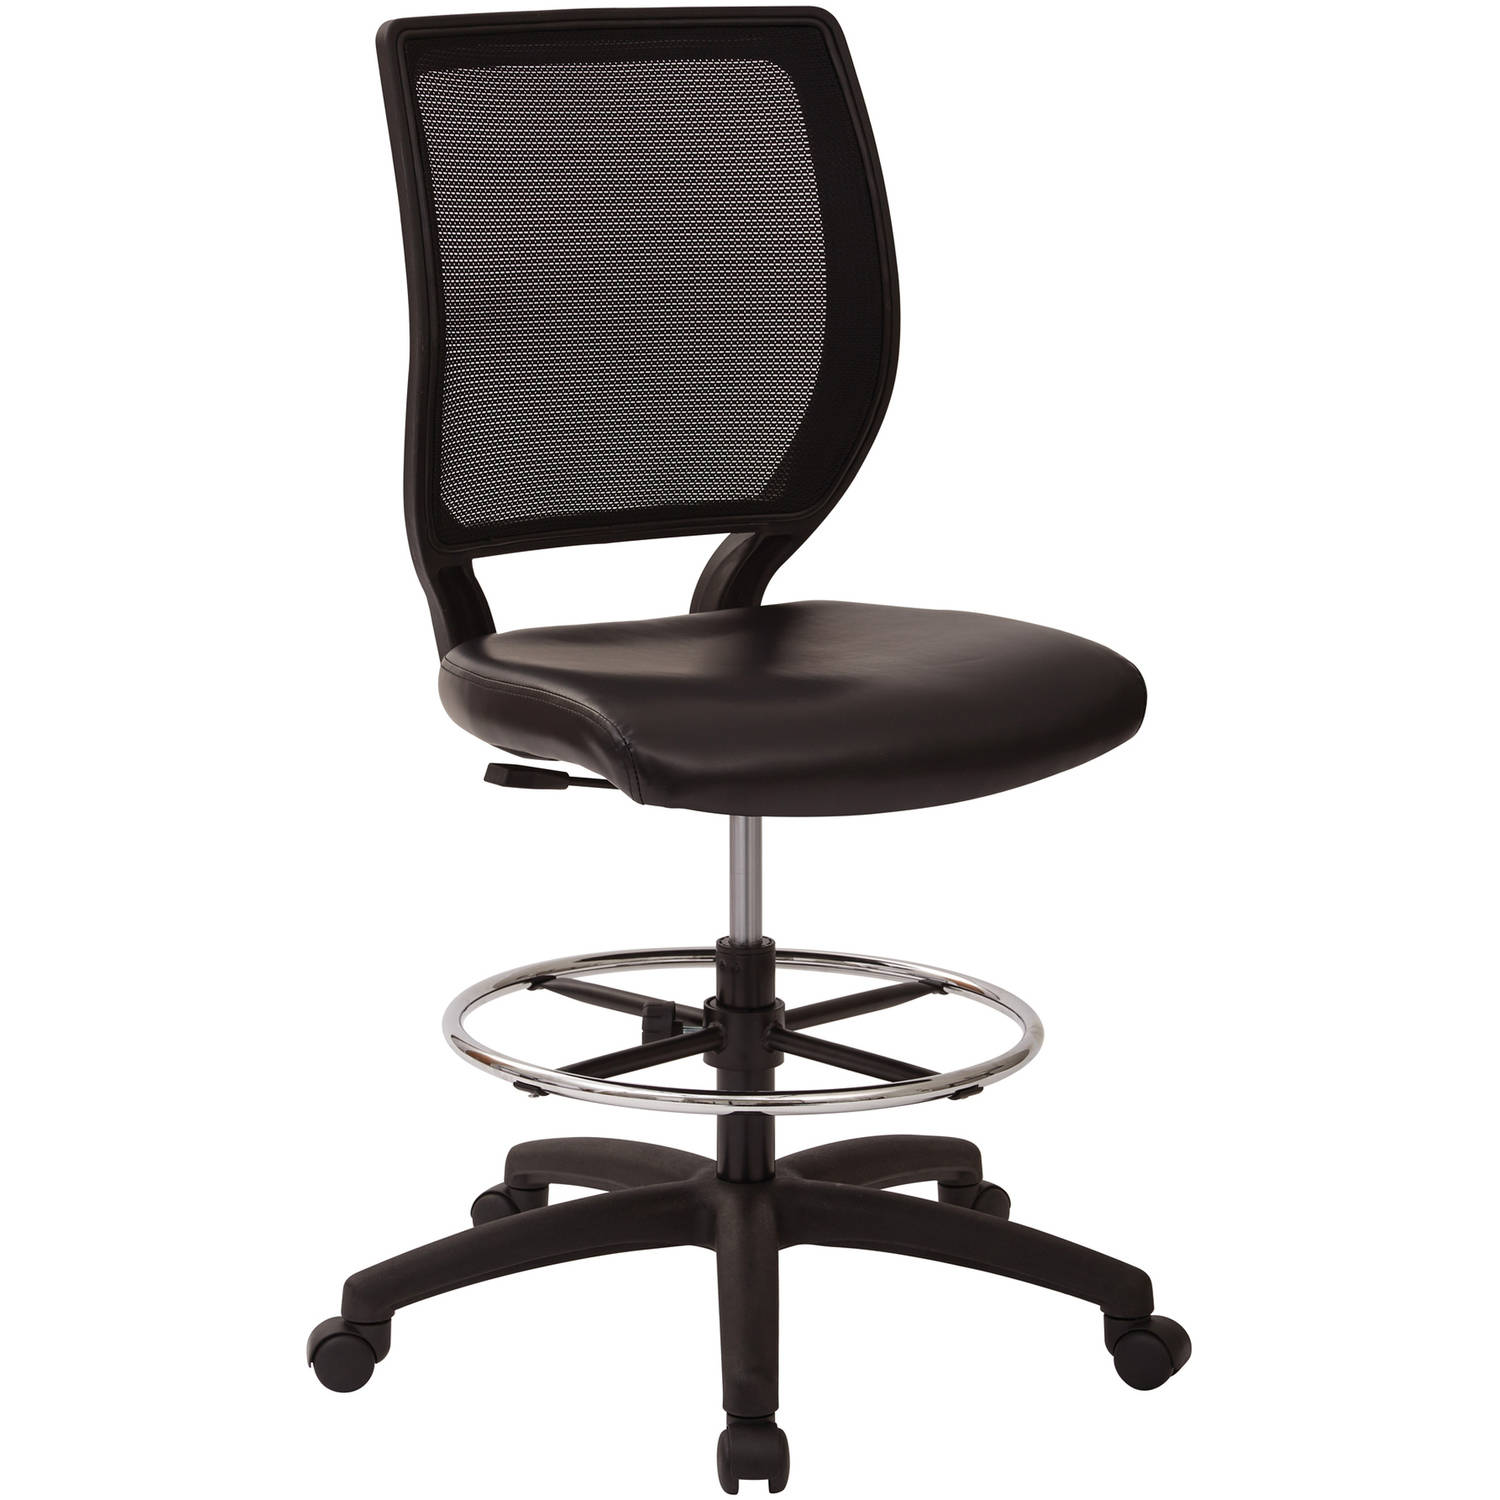 Office Star Deluxe Woven Mesh Back Armless Drafting Chair, Black Vinyl Seat with Adjustable footring and Dual Wheel Carpet Casters